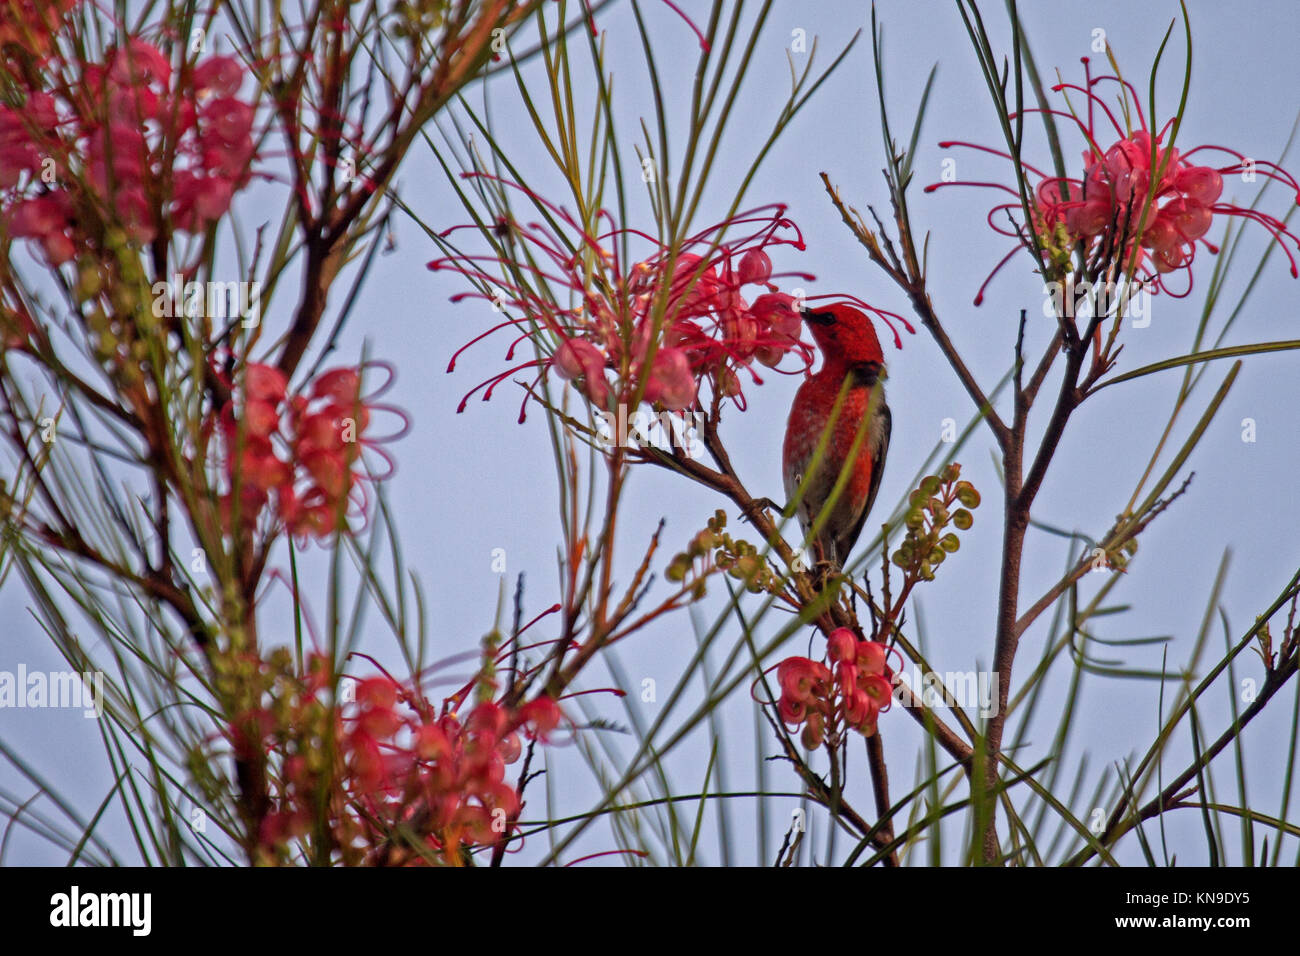 Scarlet honeyeater adult male feeding at flowering shrub in Queensland Australia - Stock Image